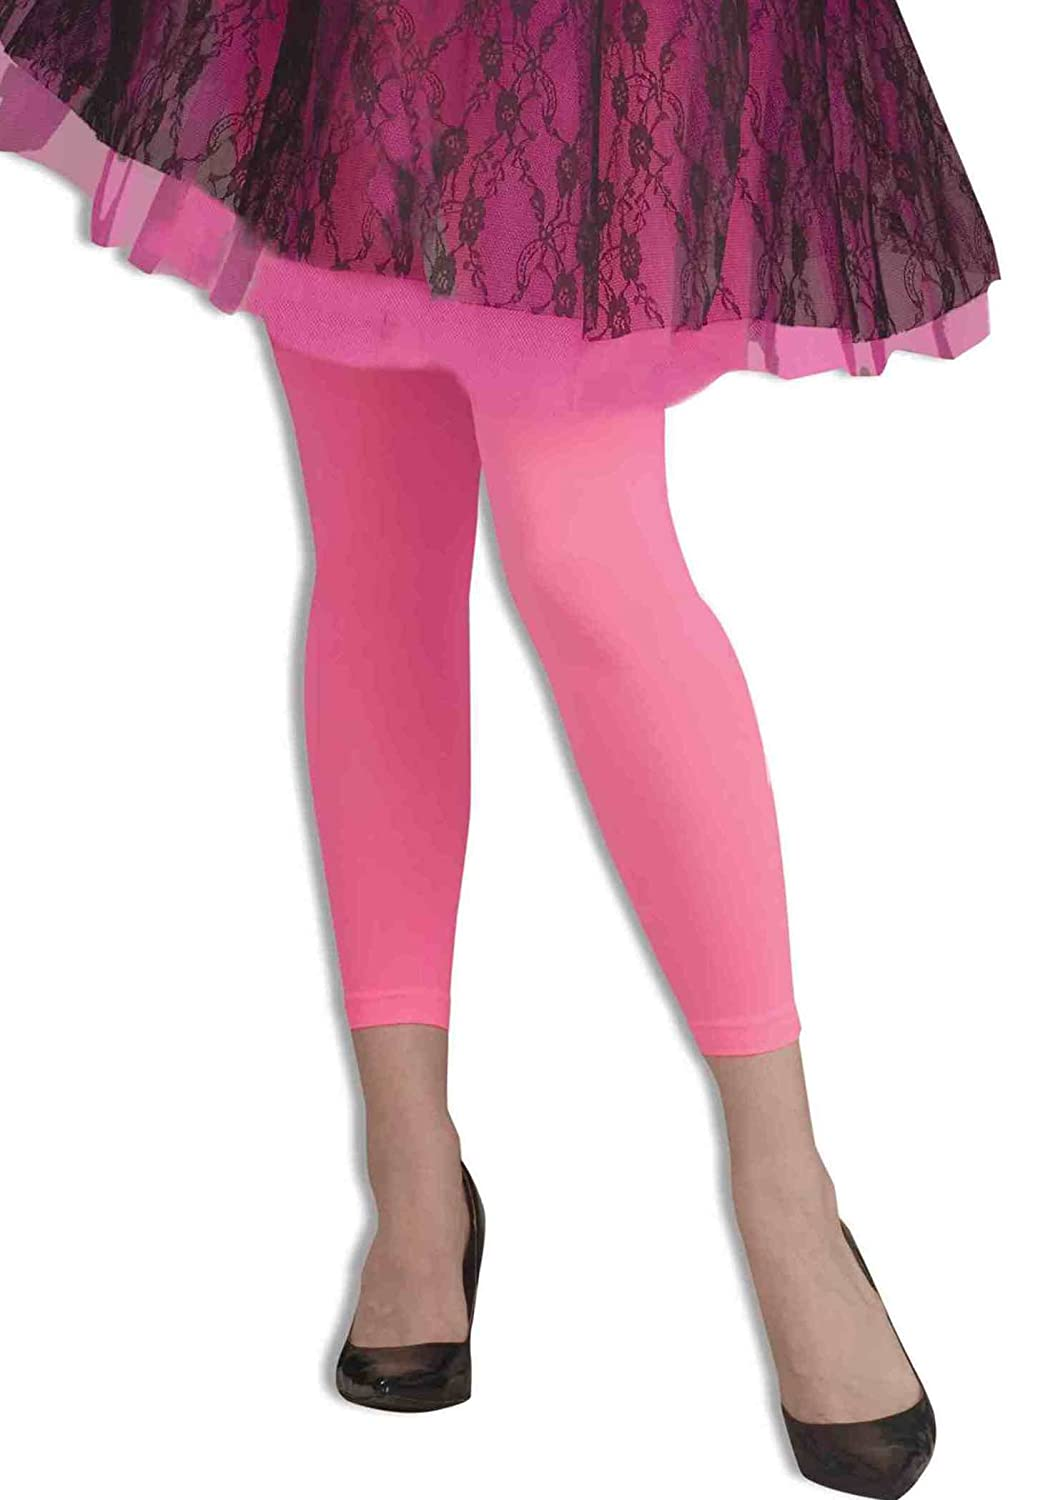 6e03f491de012 Footless Neon Tights PINK Fancy Dress: Amazon.co.uk: Toys & Games